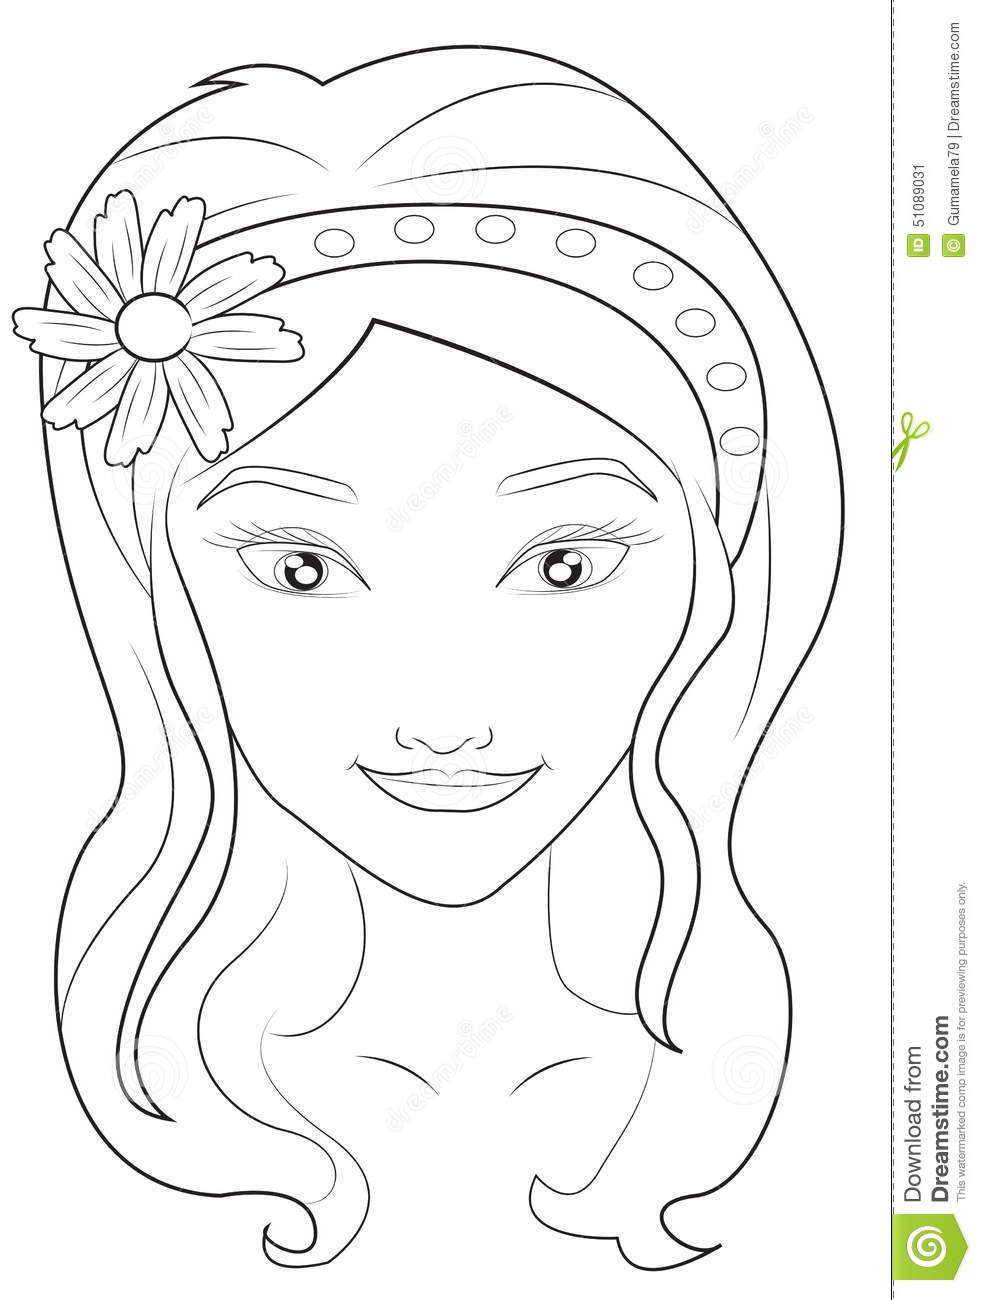 coloring pages of girls faces girl 39 s face coloring page stock illustration illustration